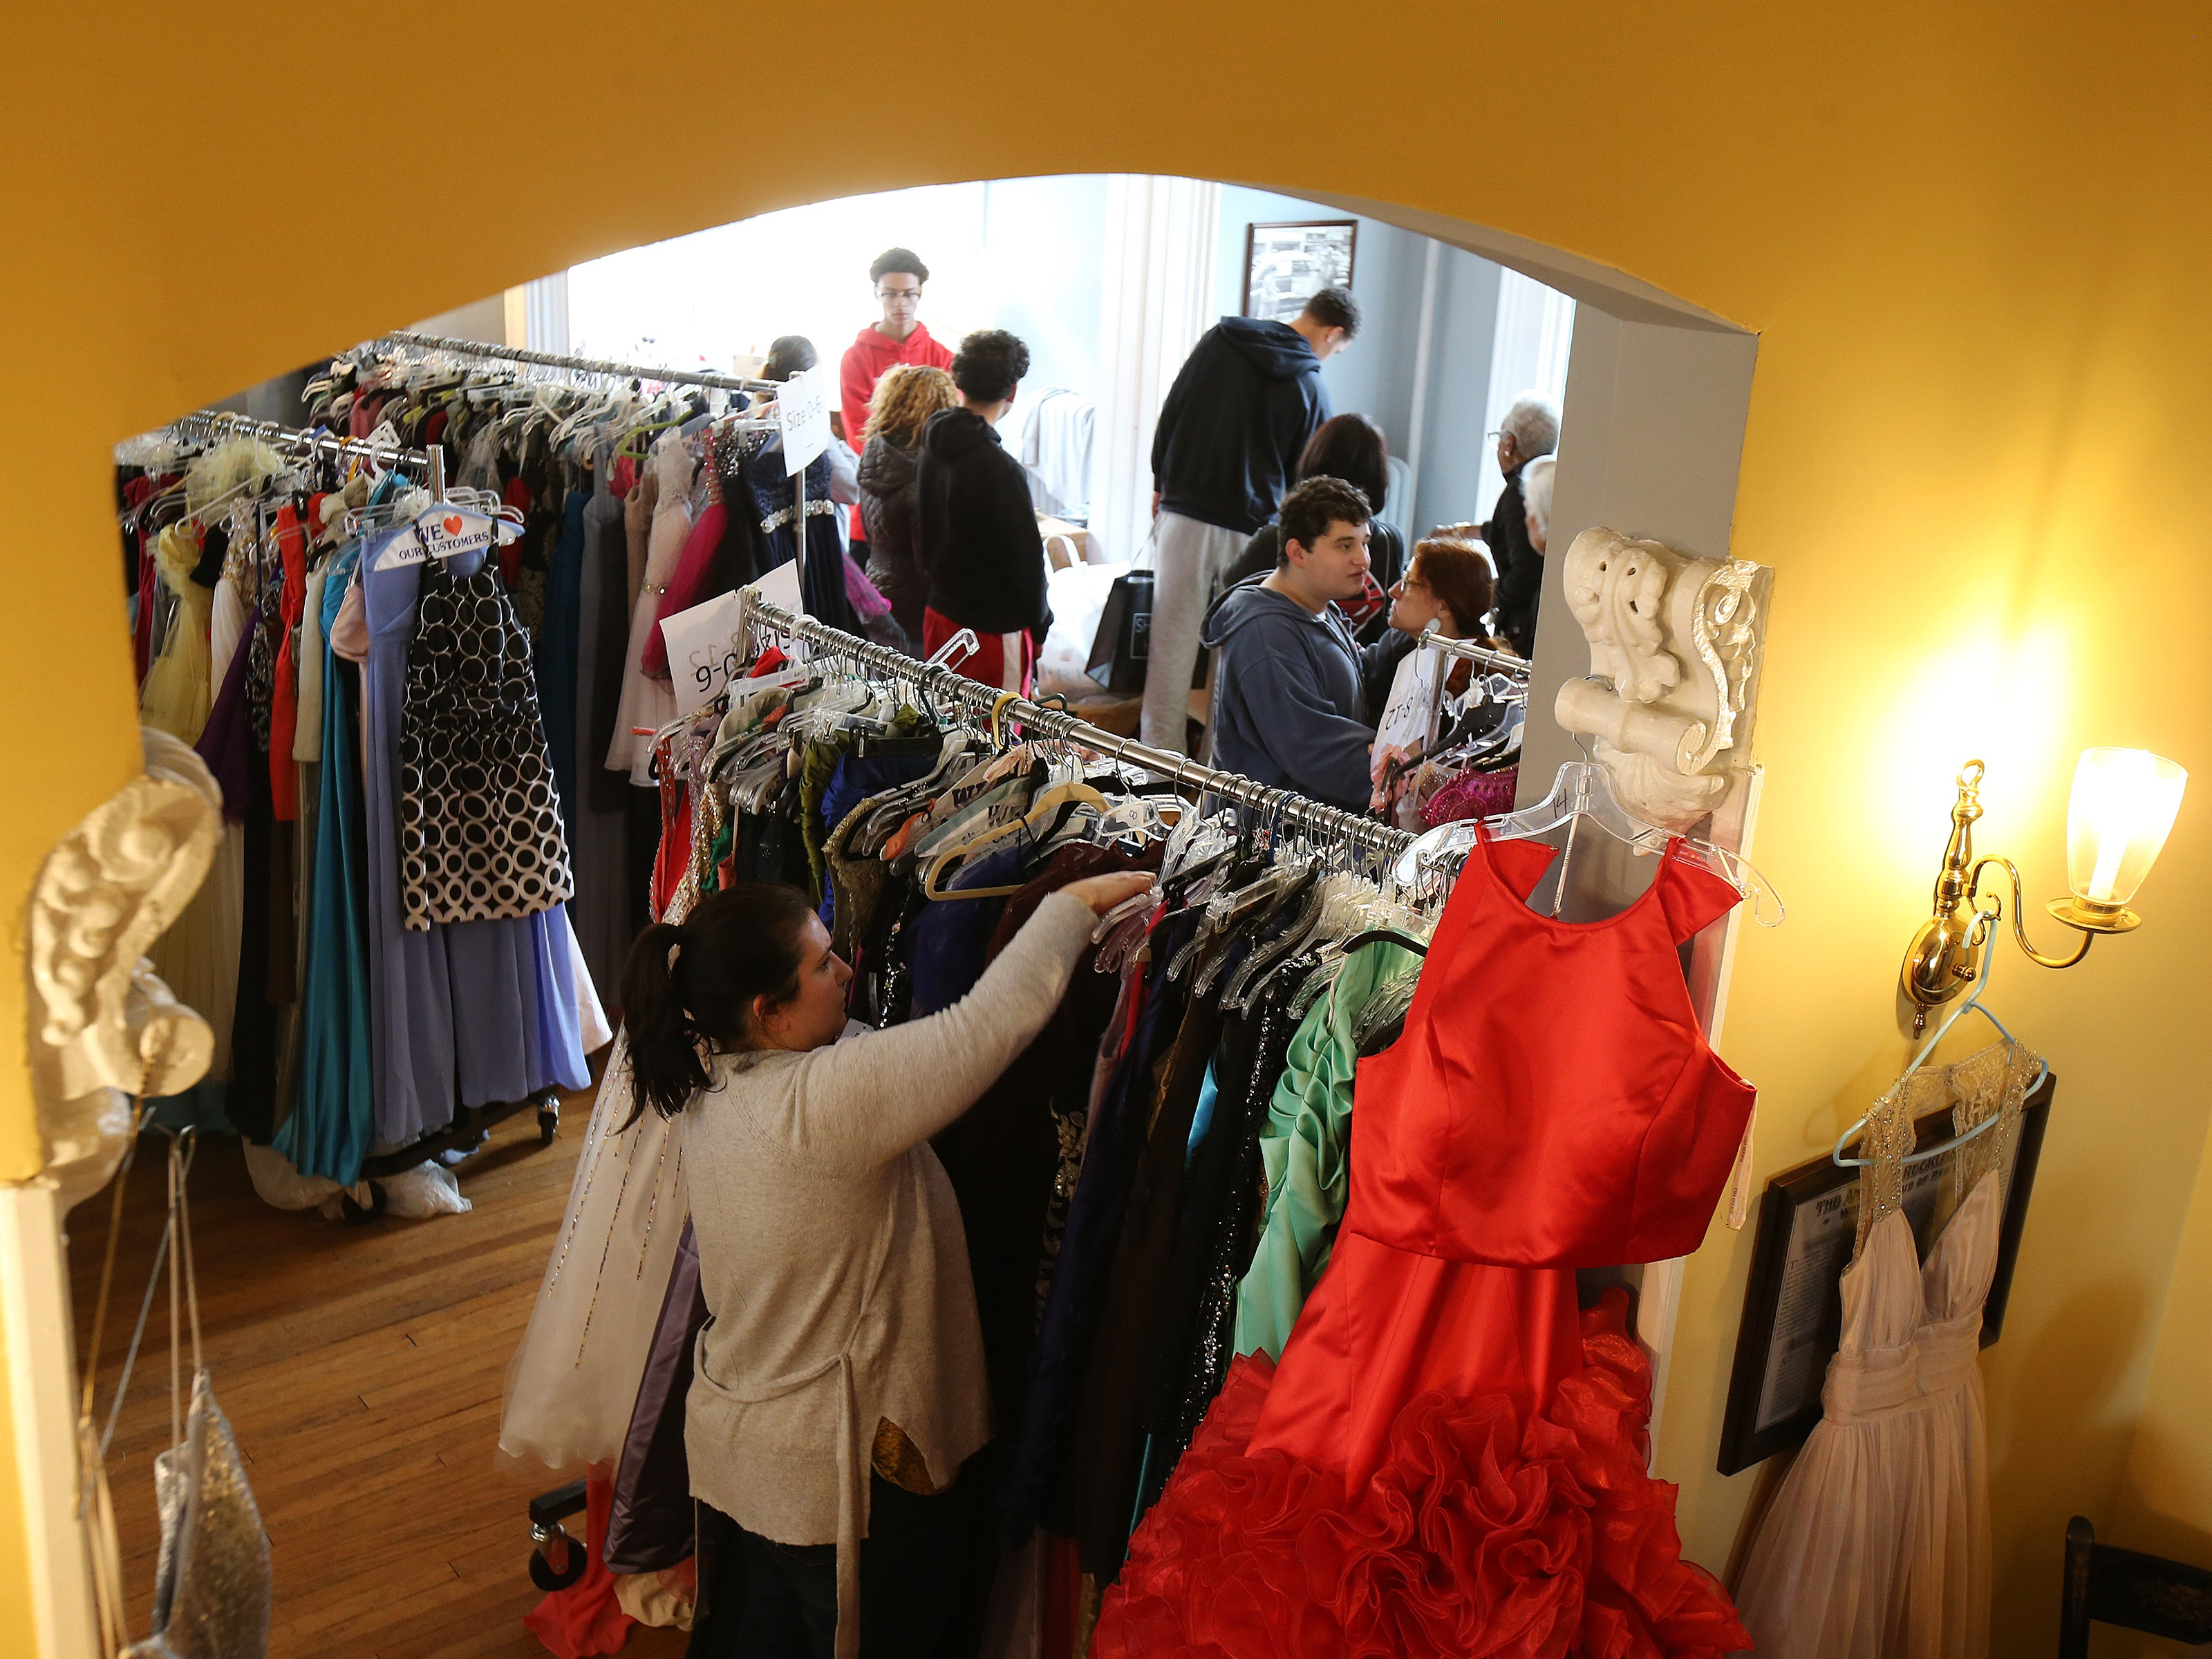 Lunch Break's 4th Annual Prom Giveaway Event at the Woman's Club of Red Bank in Red Bank, NJ Monday, April 22, 2019.